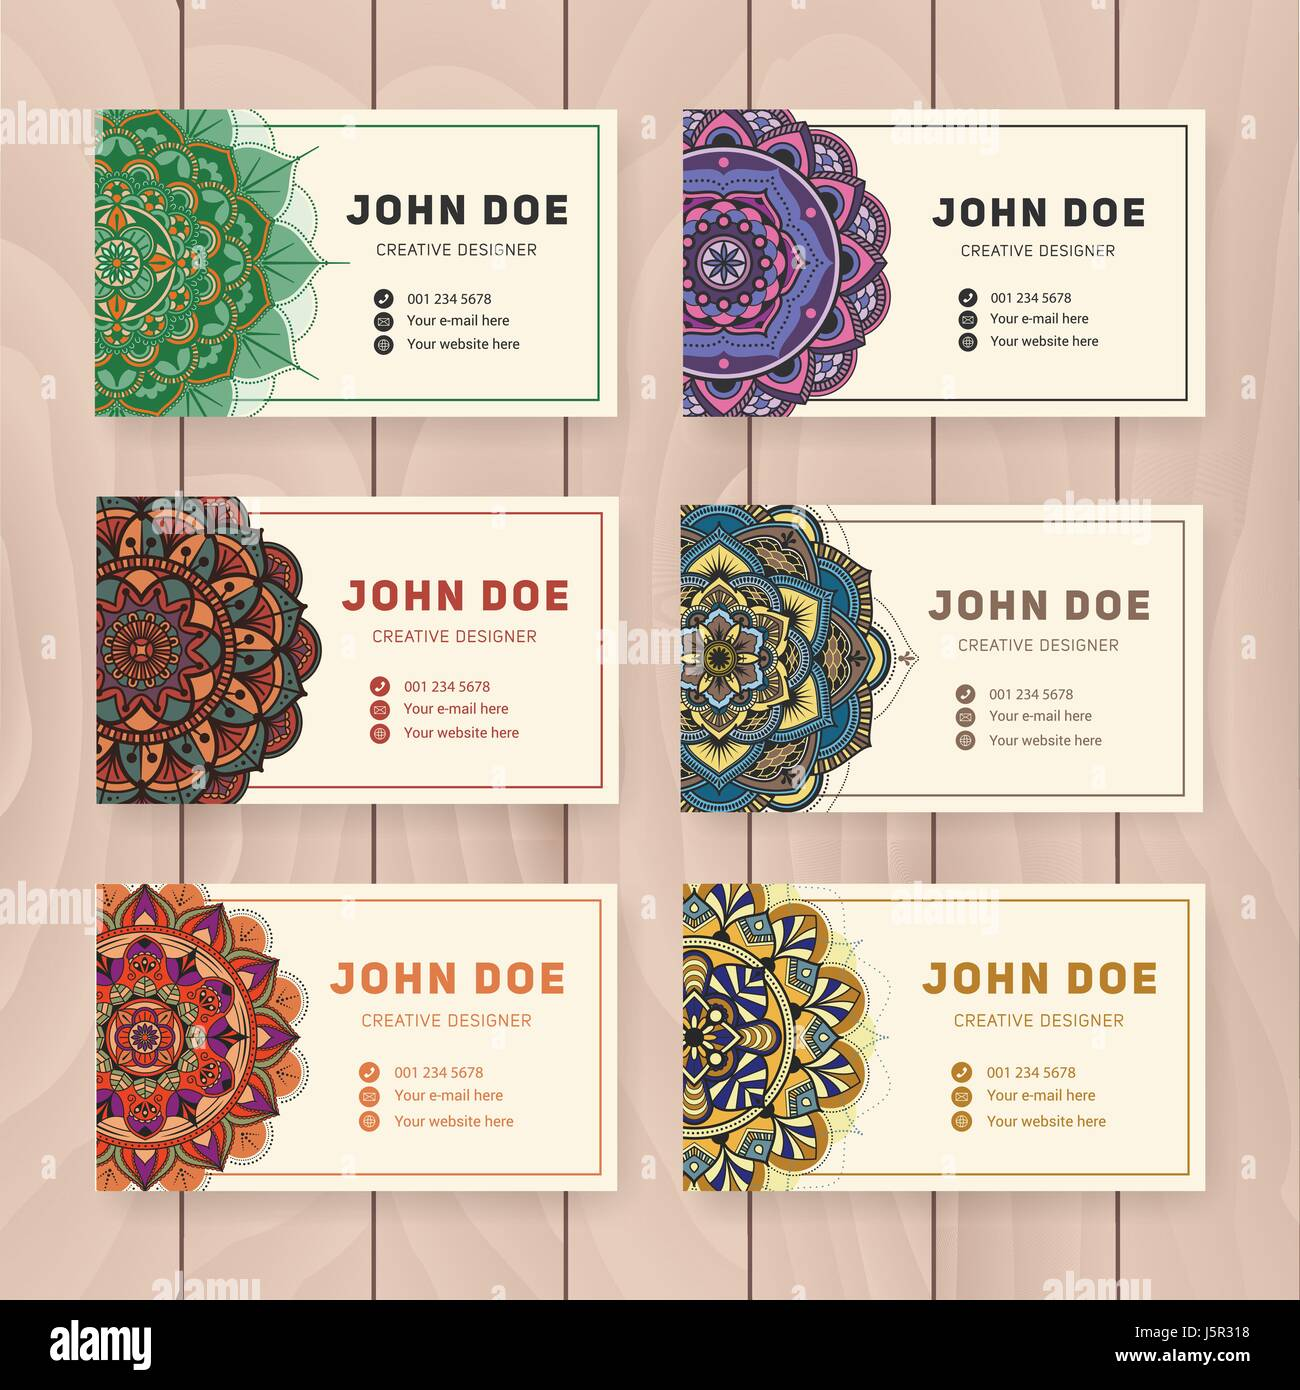 Creative useful business name card design vintage colored mandala creative useful business name card design vintage colored mandala design for personal name card visiting card or tag round ornament vector illustra reheart Images